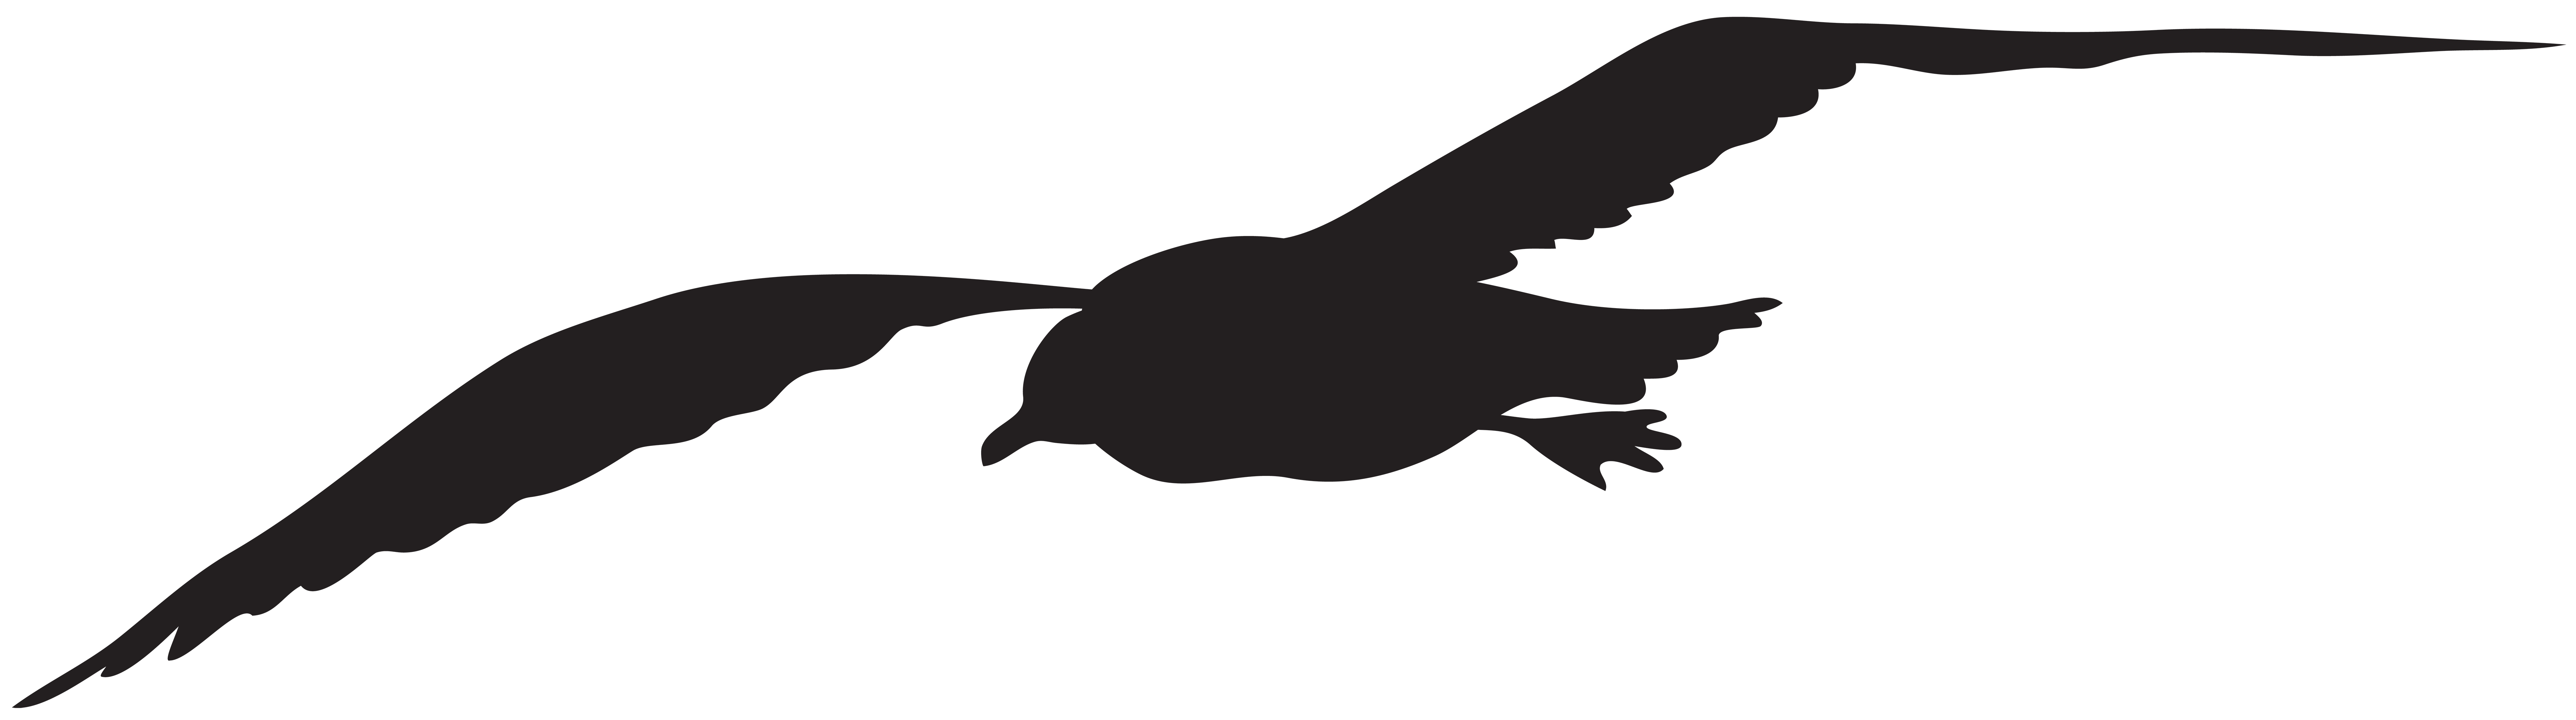 Silhouette png clip art. Seagull clipart svg freeuse library